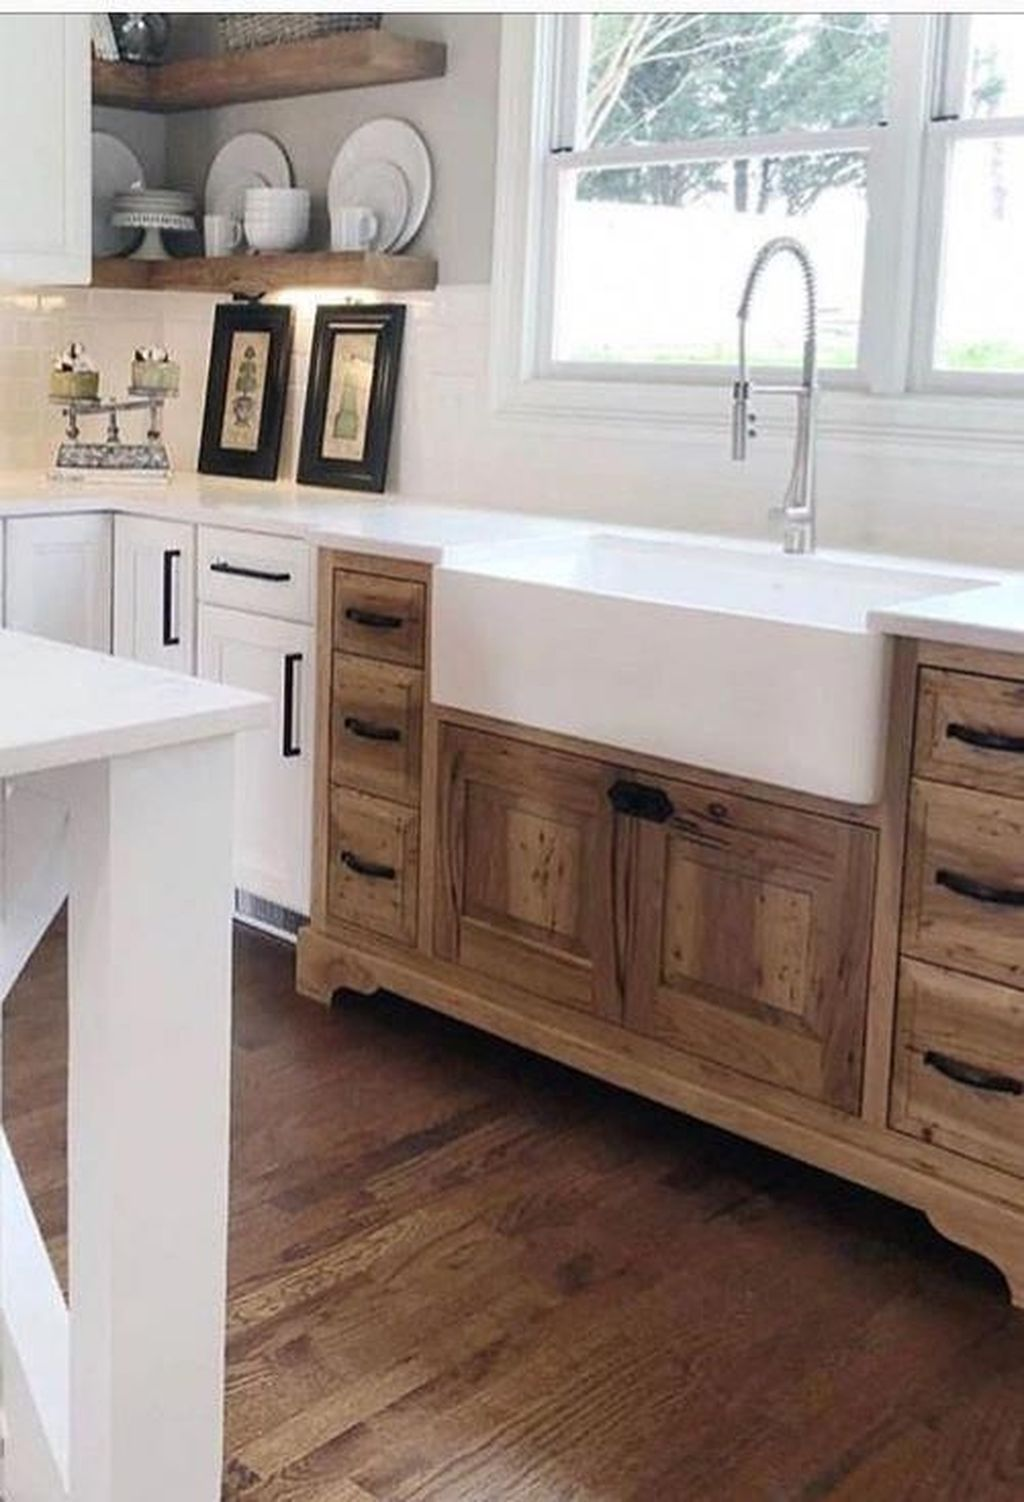 101 Rustic Farmhouse Kitchen Cabinets Design Ideas In 2020 Farmhouse Kitchen Cabinets Kitchen Cabinet Design Home Kitchens